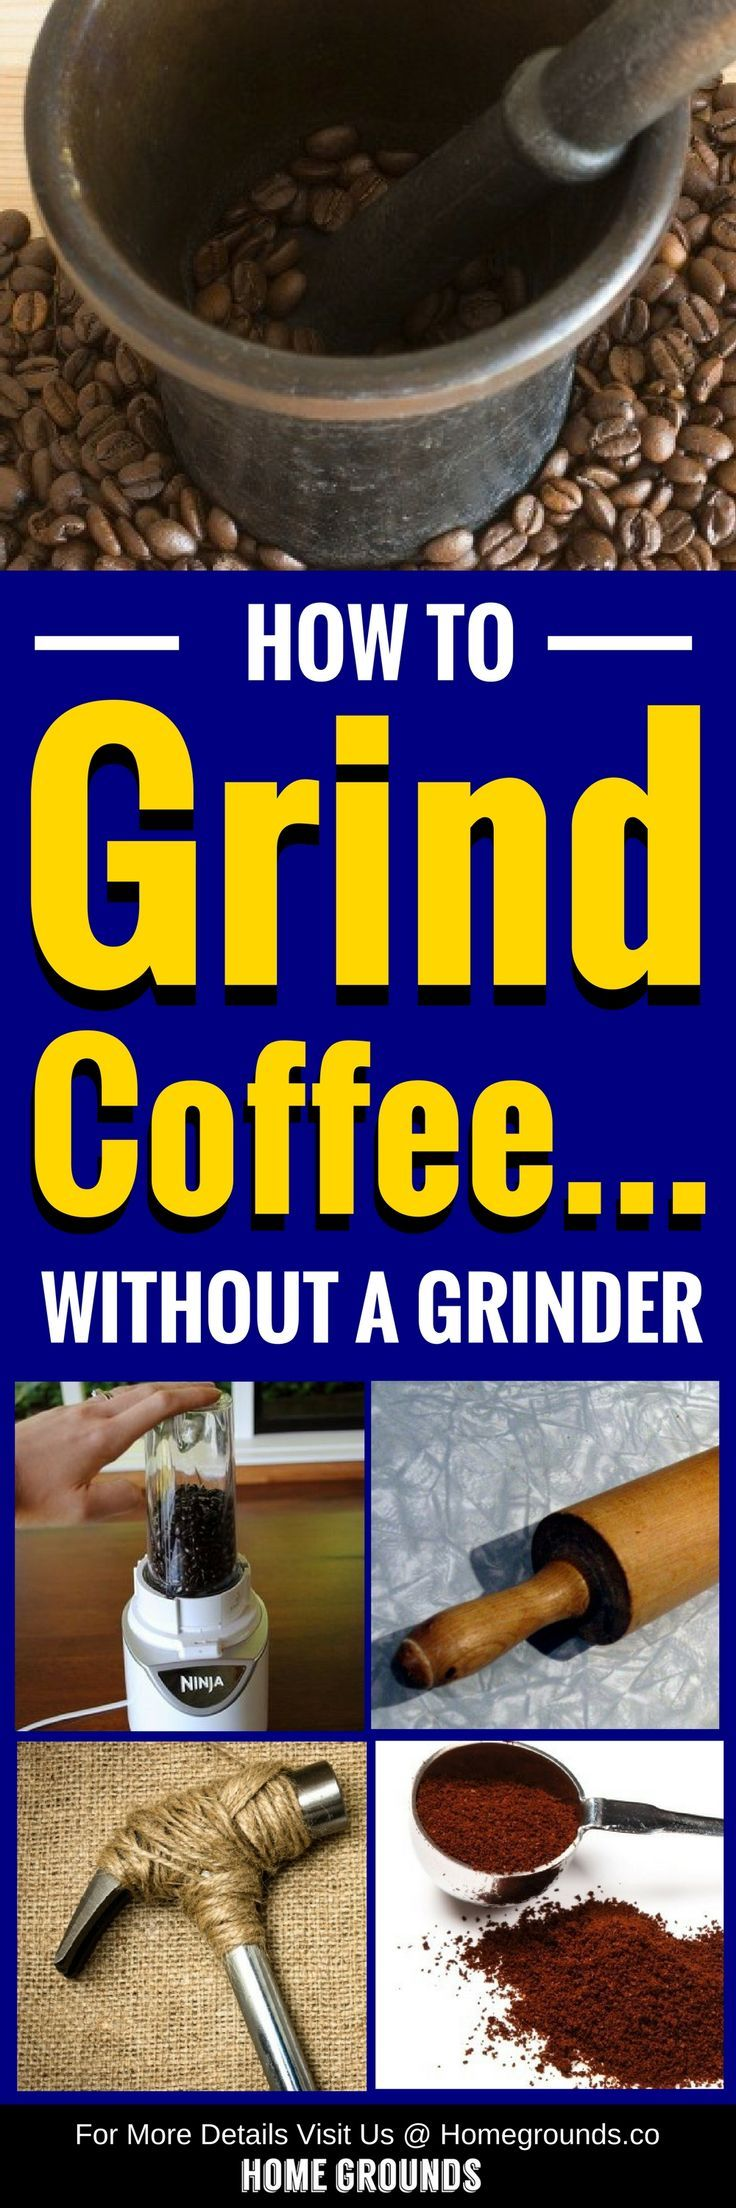 6 simple ways to grind coffee without a grinder